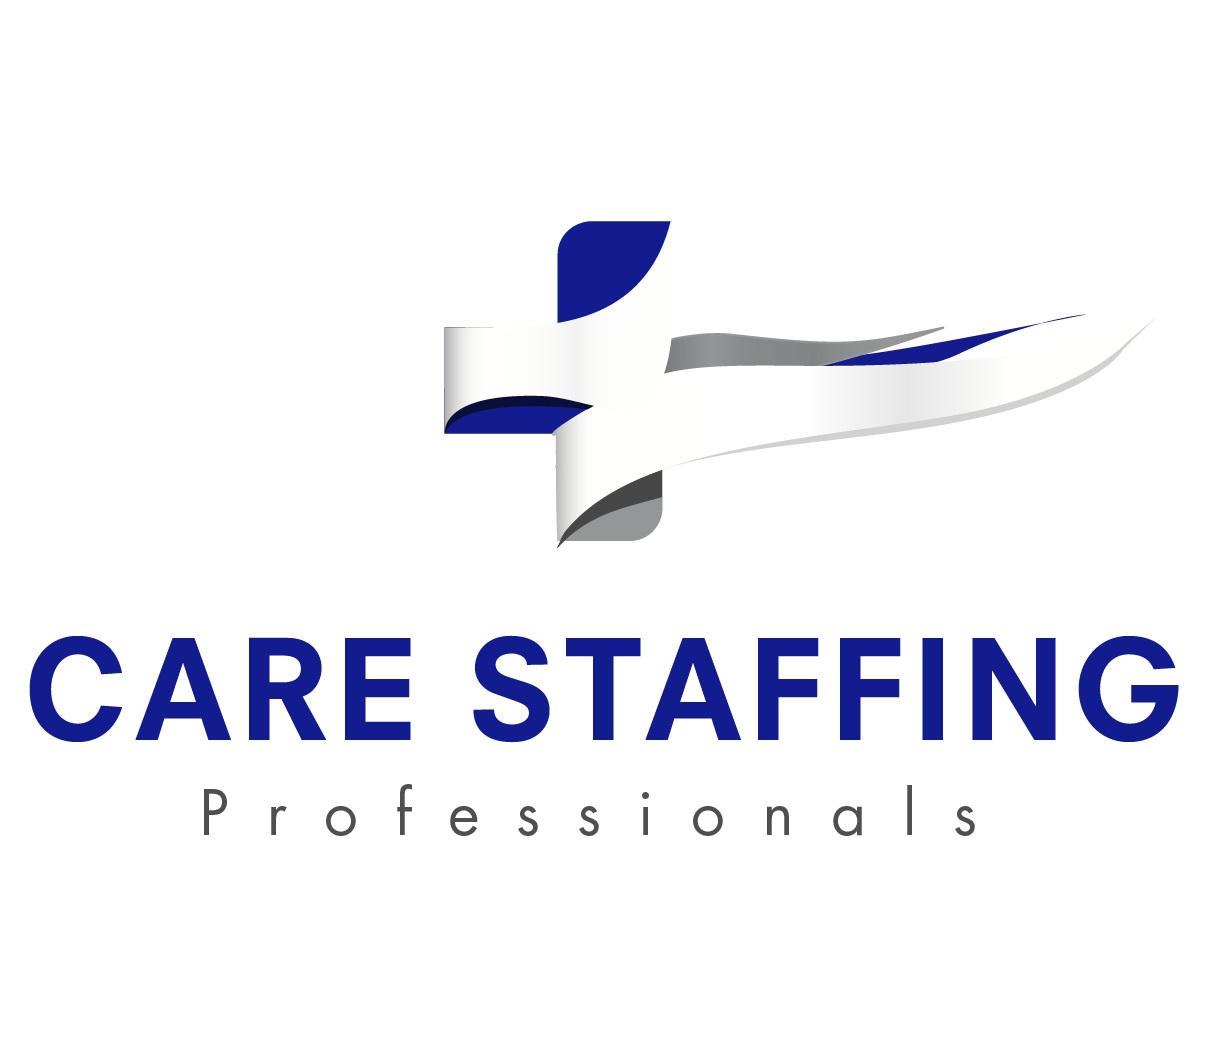 Care Staffing Professionals